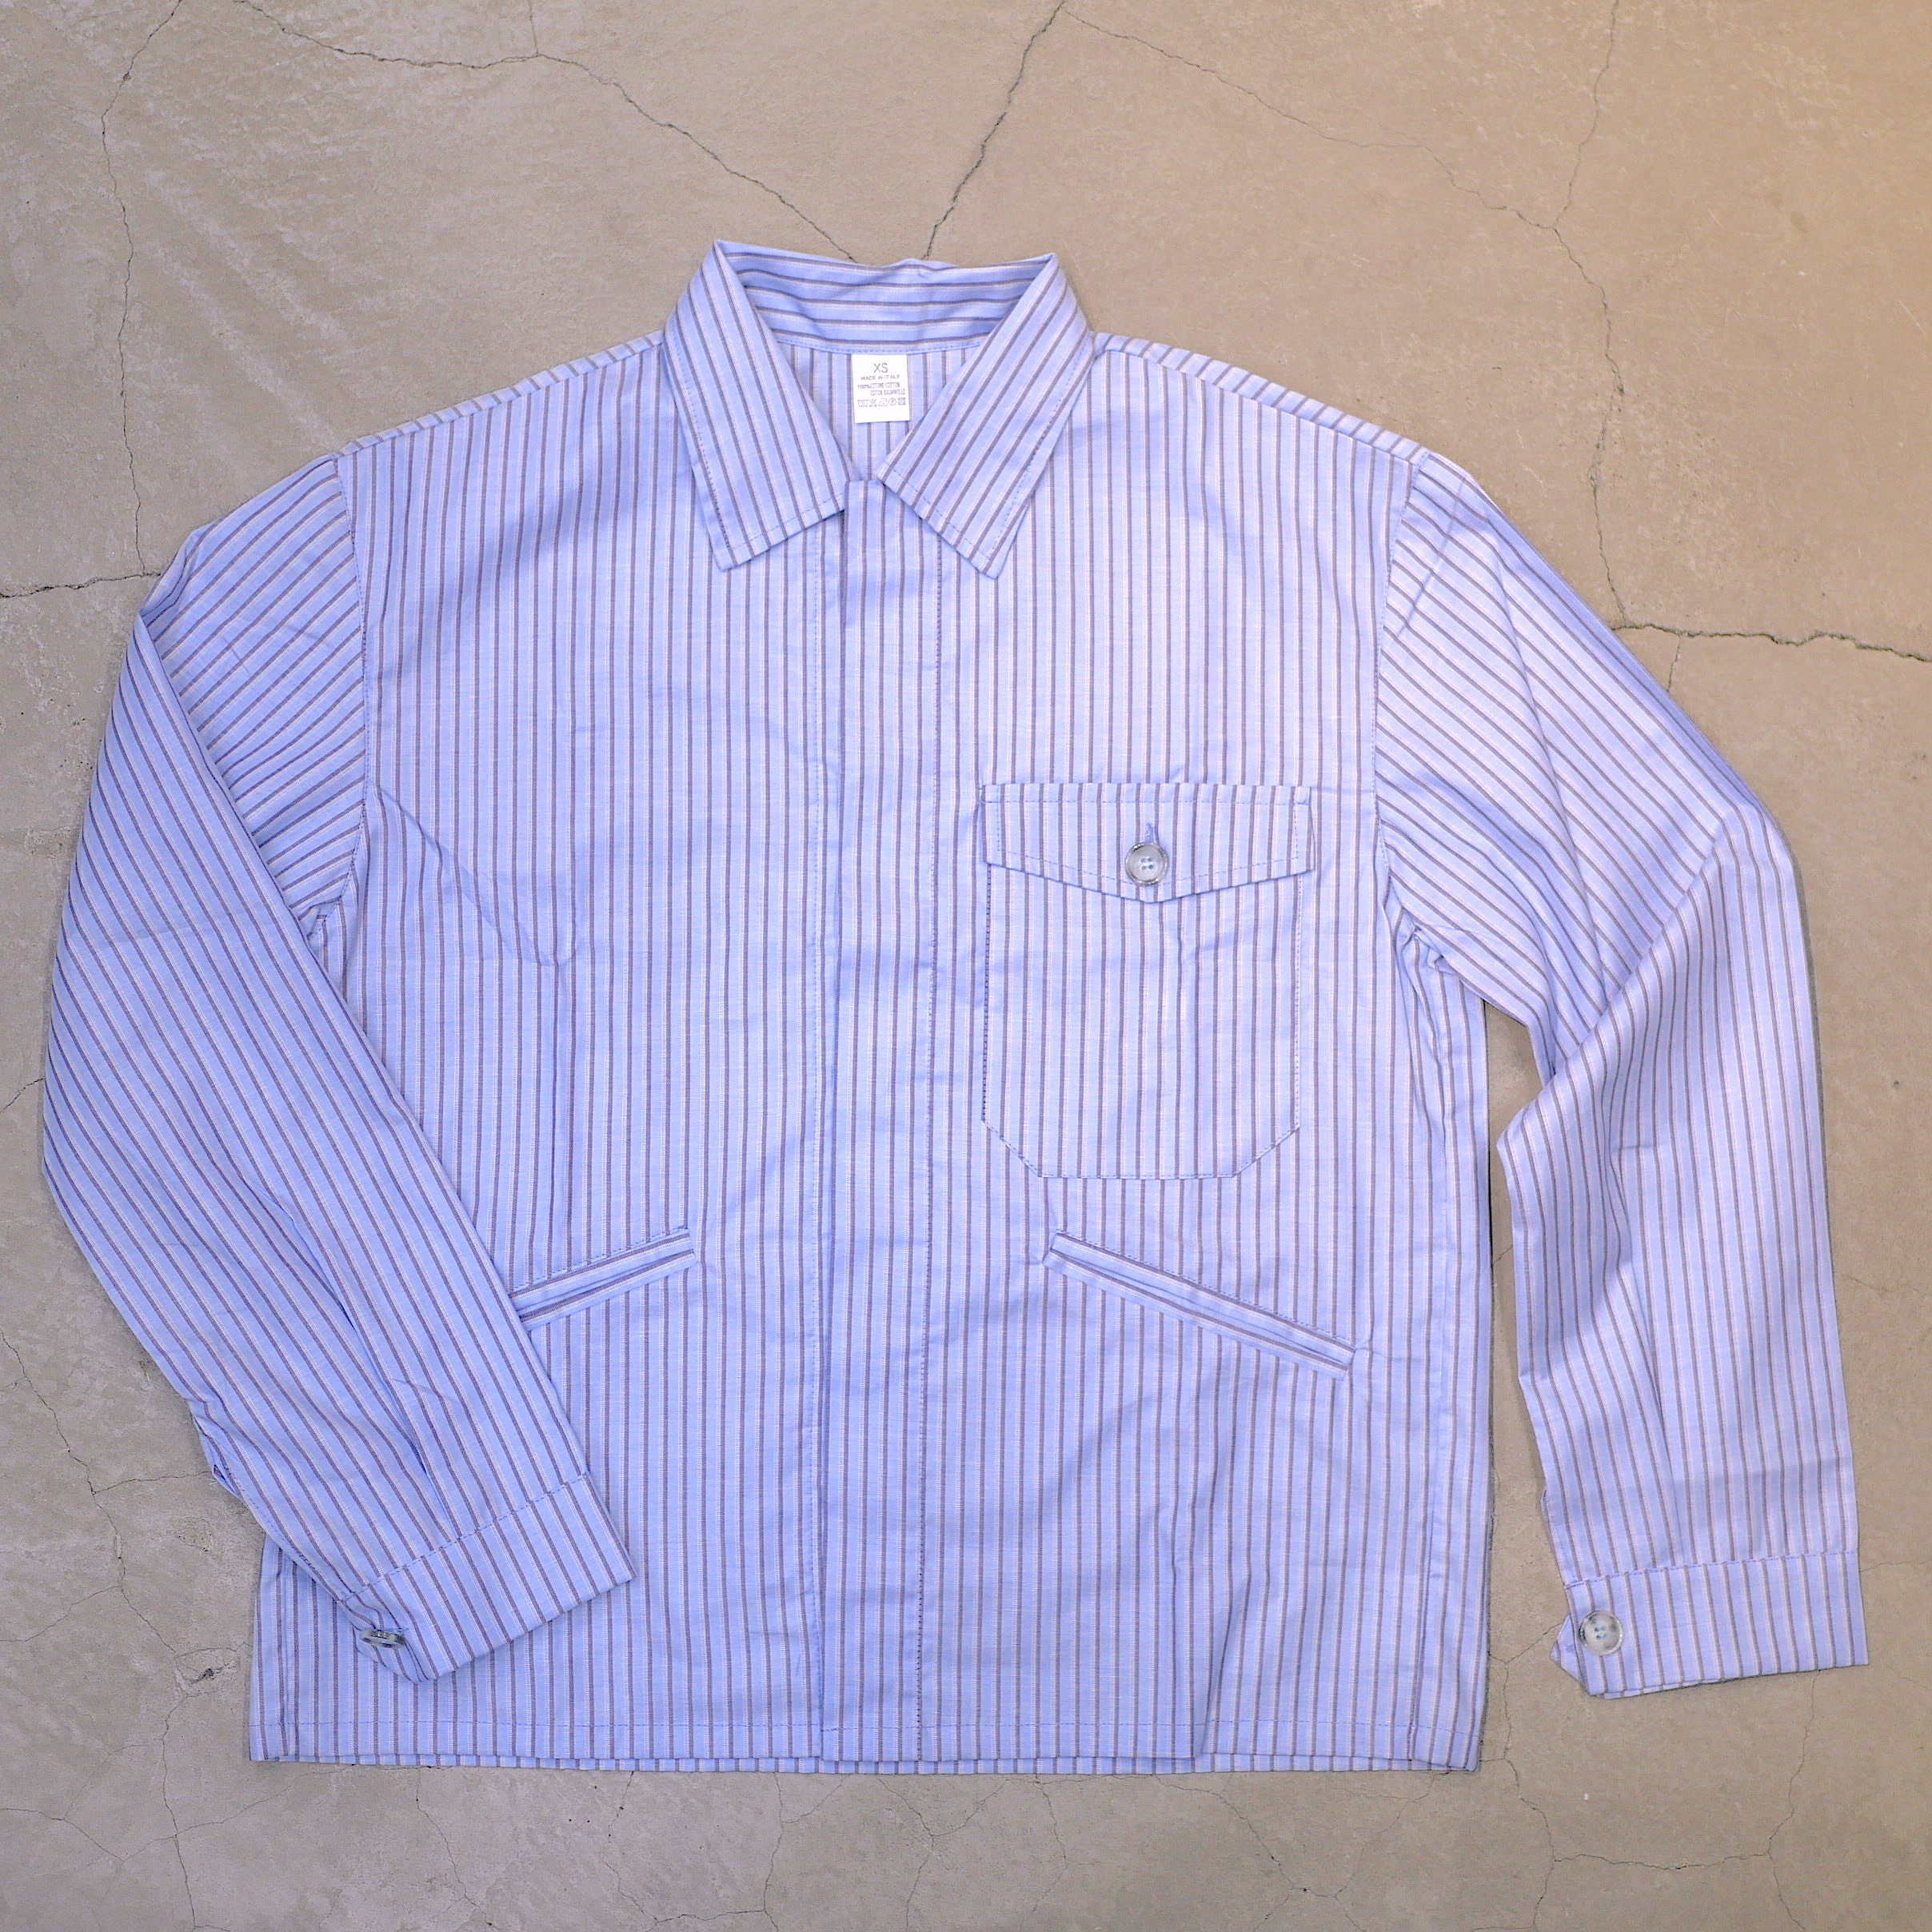 MASSAWA / WORK SHIRTS